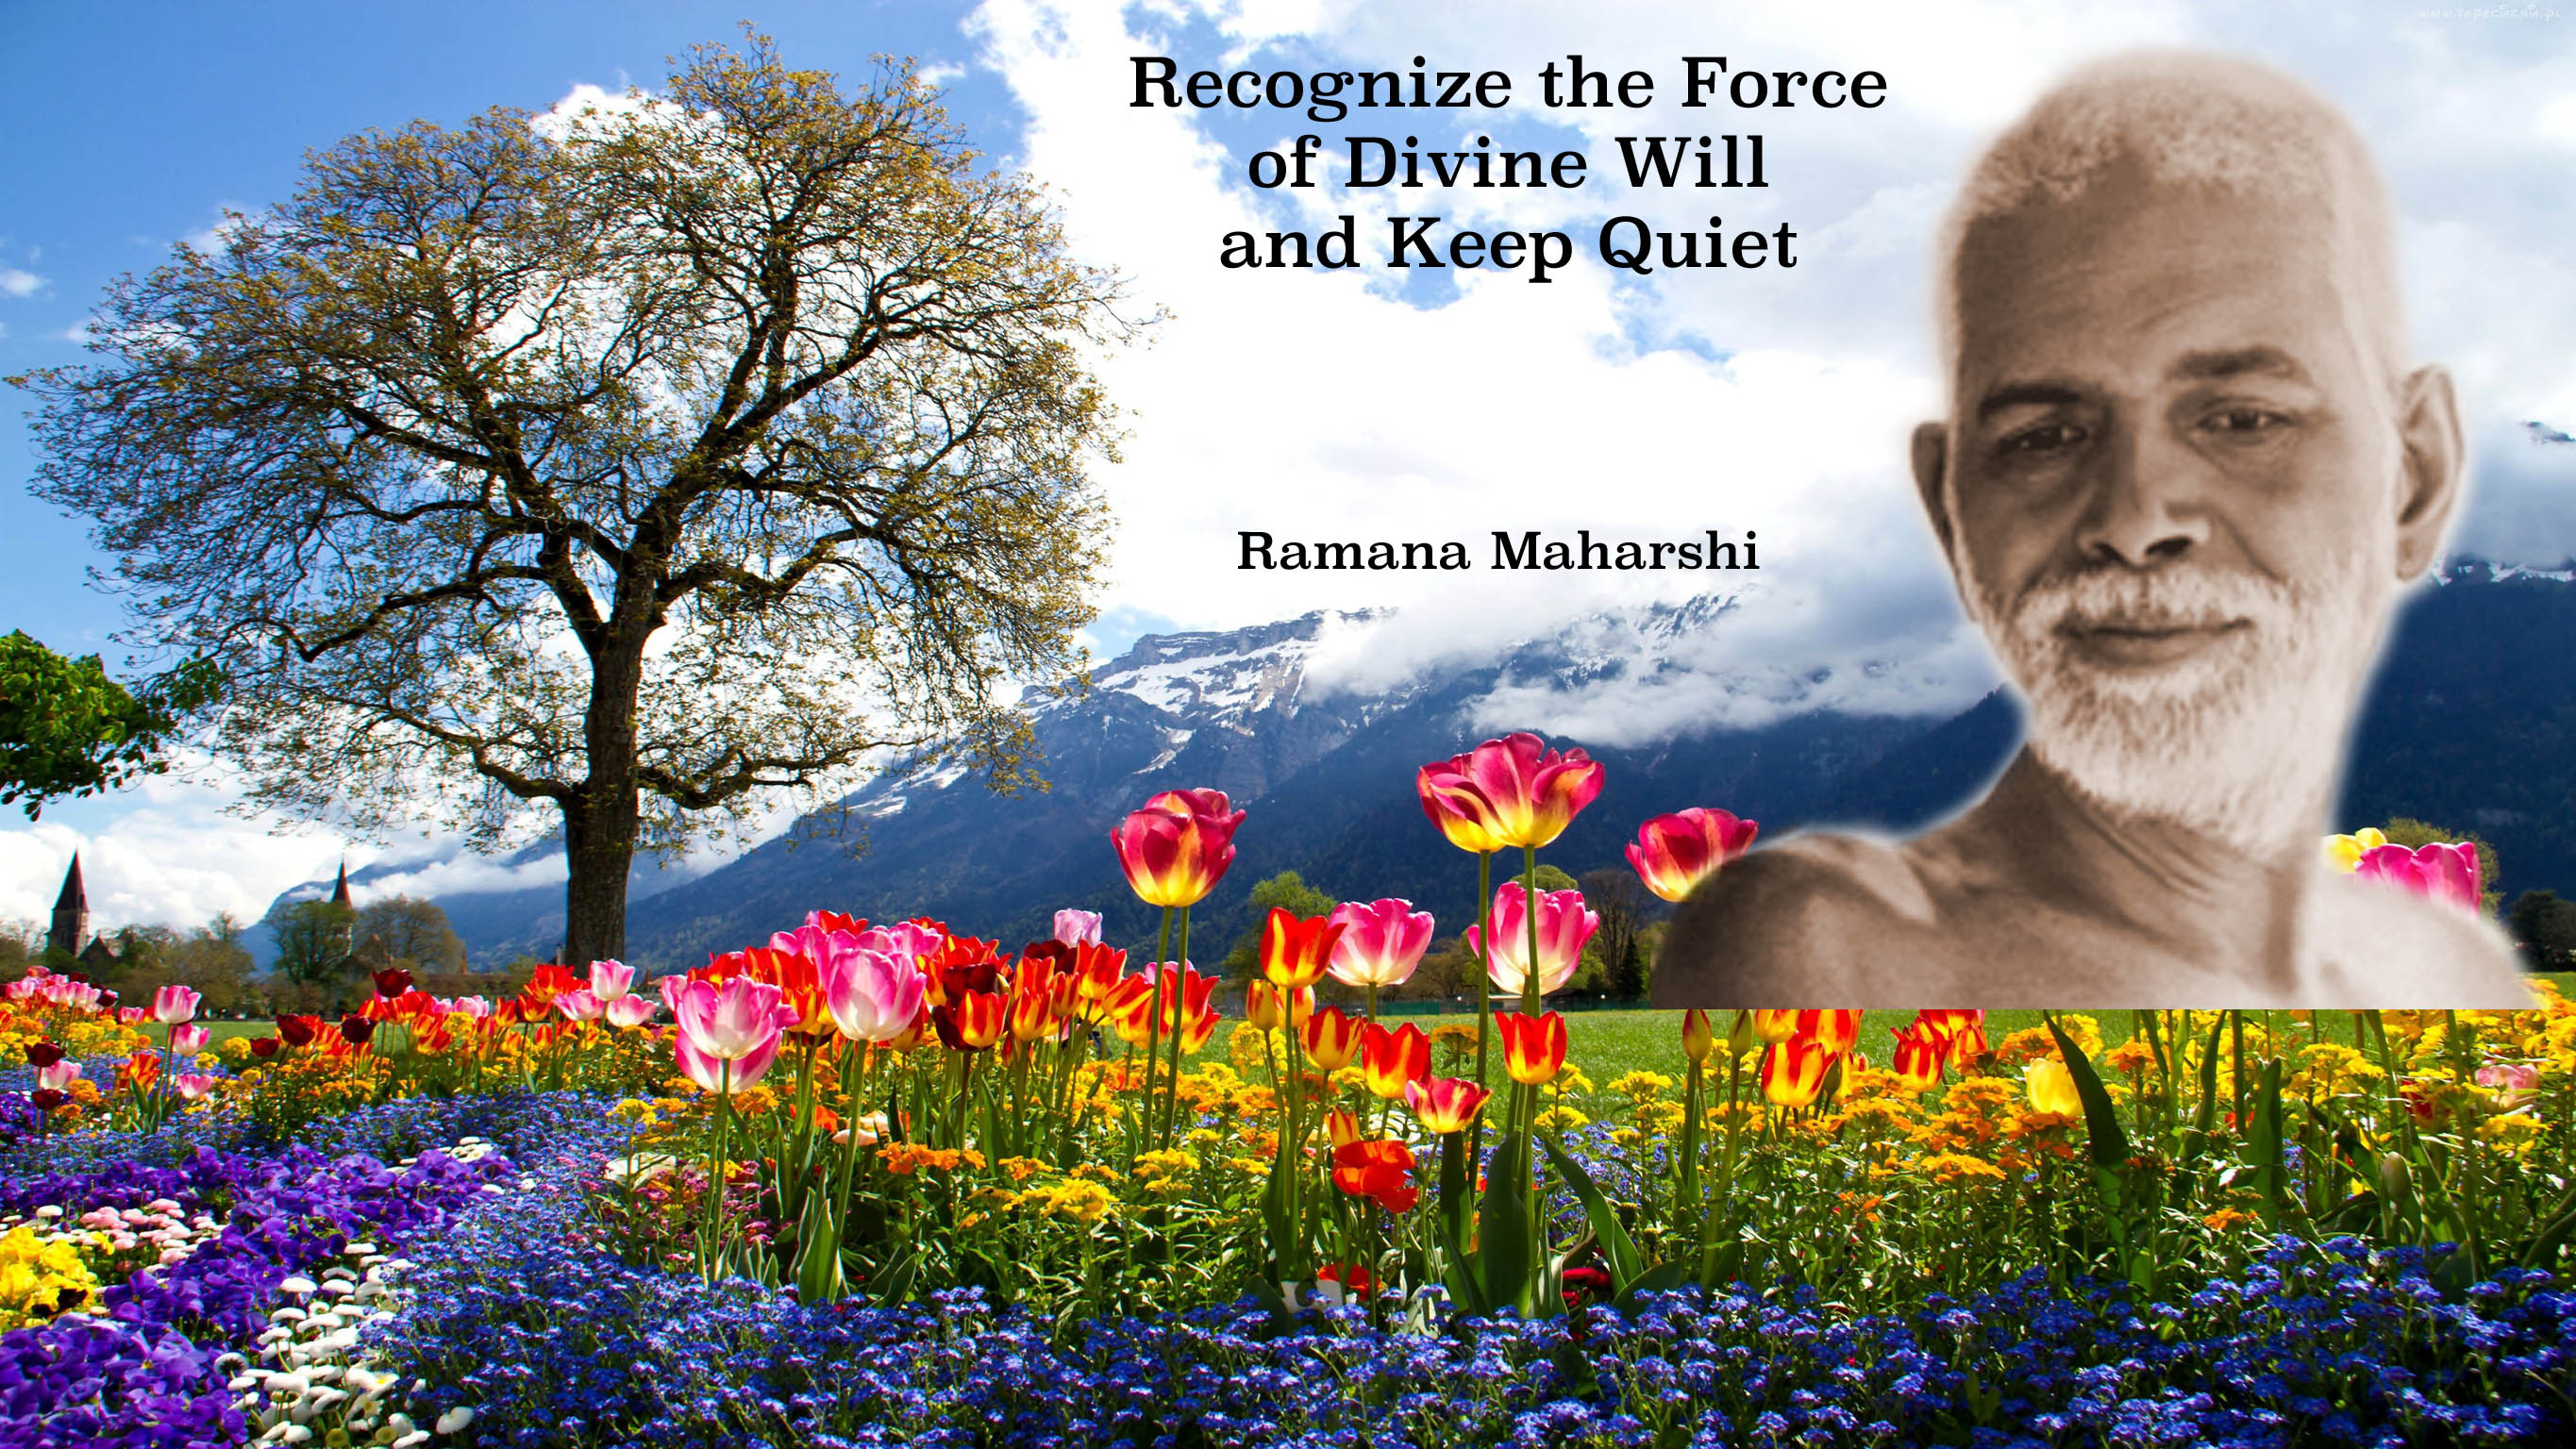 Recognize the force of divine will and keep quiet